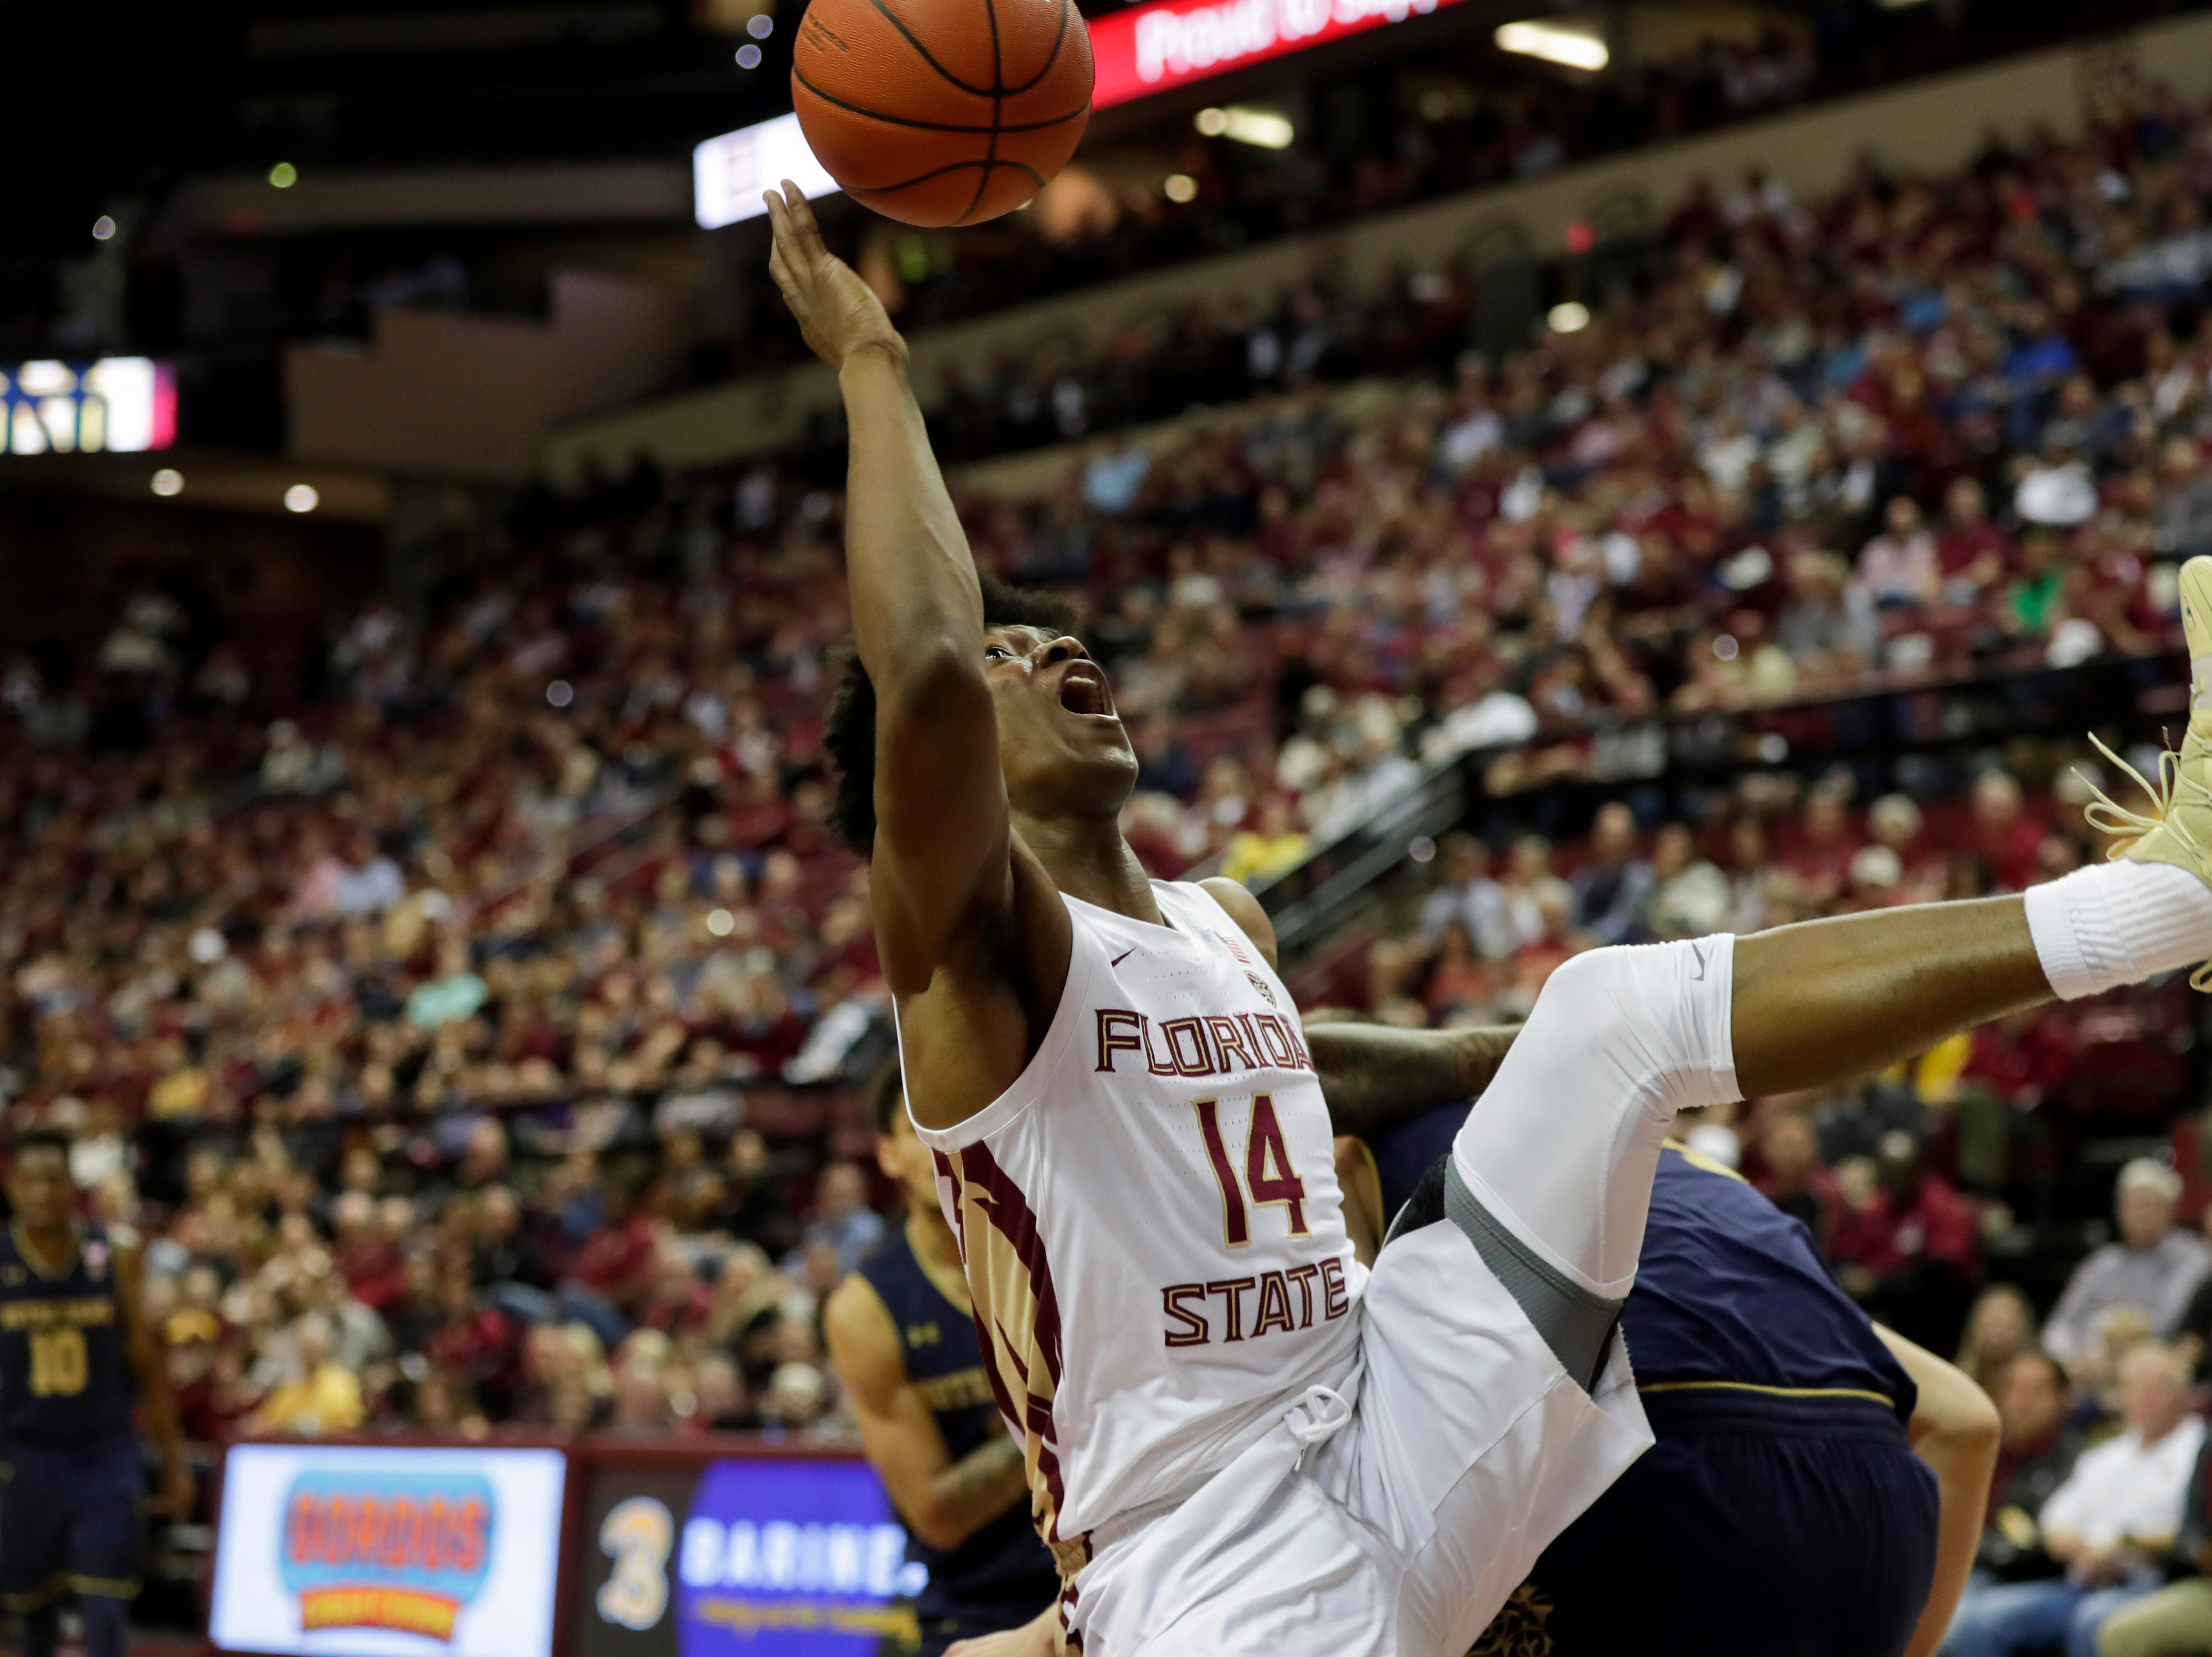 Florida State Seminoles guard Terance Mann (14) comes down on top of a Notre Dame player with a rebound during a game between FSU and Notre Dame at the Donald L. Tucker Civic Center Monday, Feb. 25, 2019.